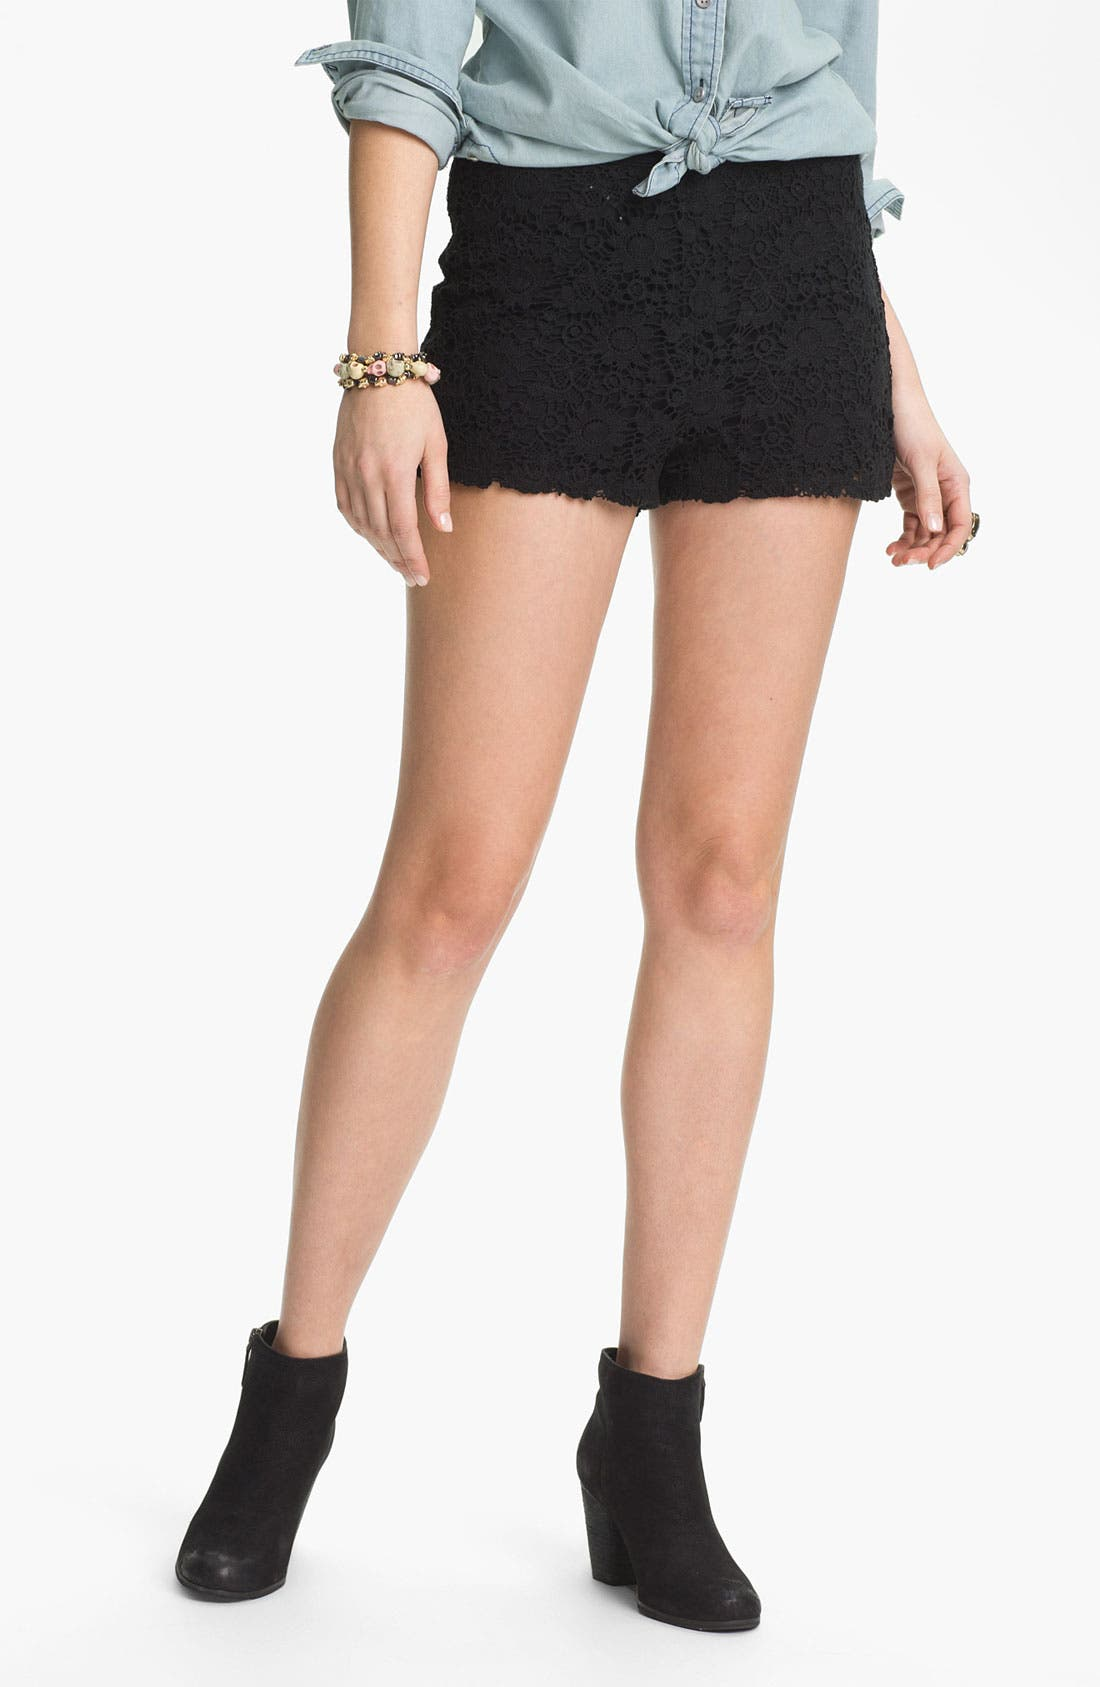 Alternate Image 1 Selected - Mimi Chica High Waist Lace Shorts (Juniors)